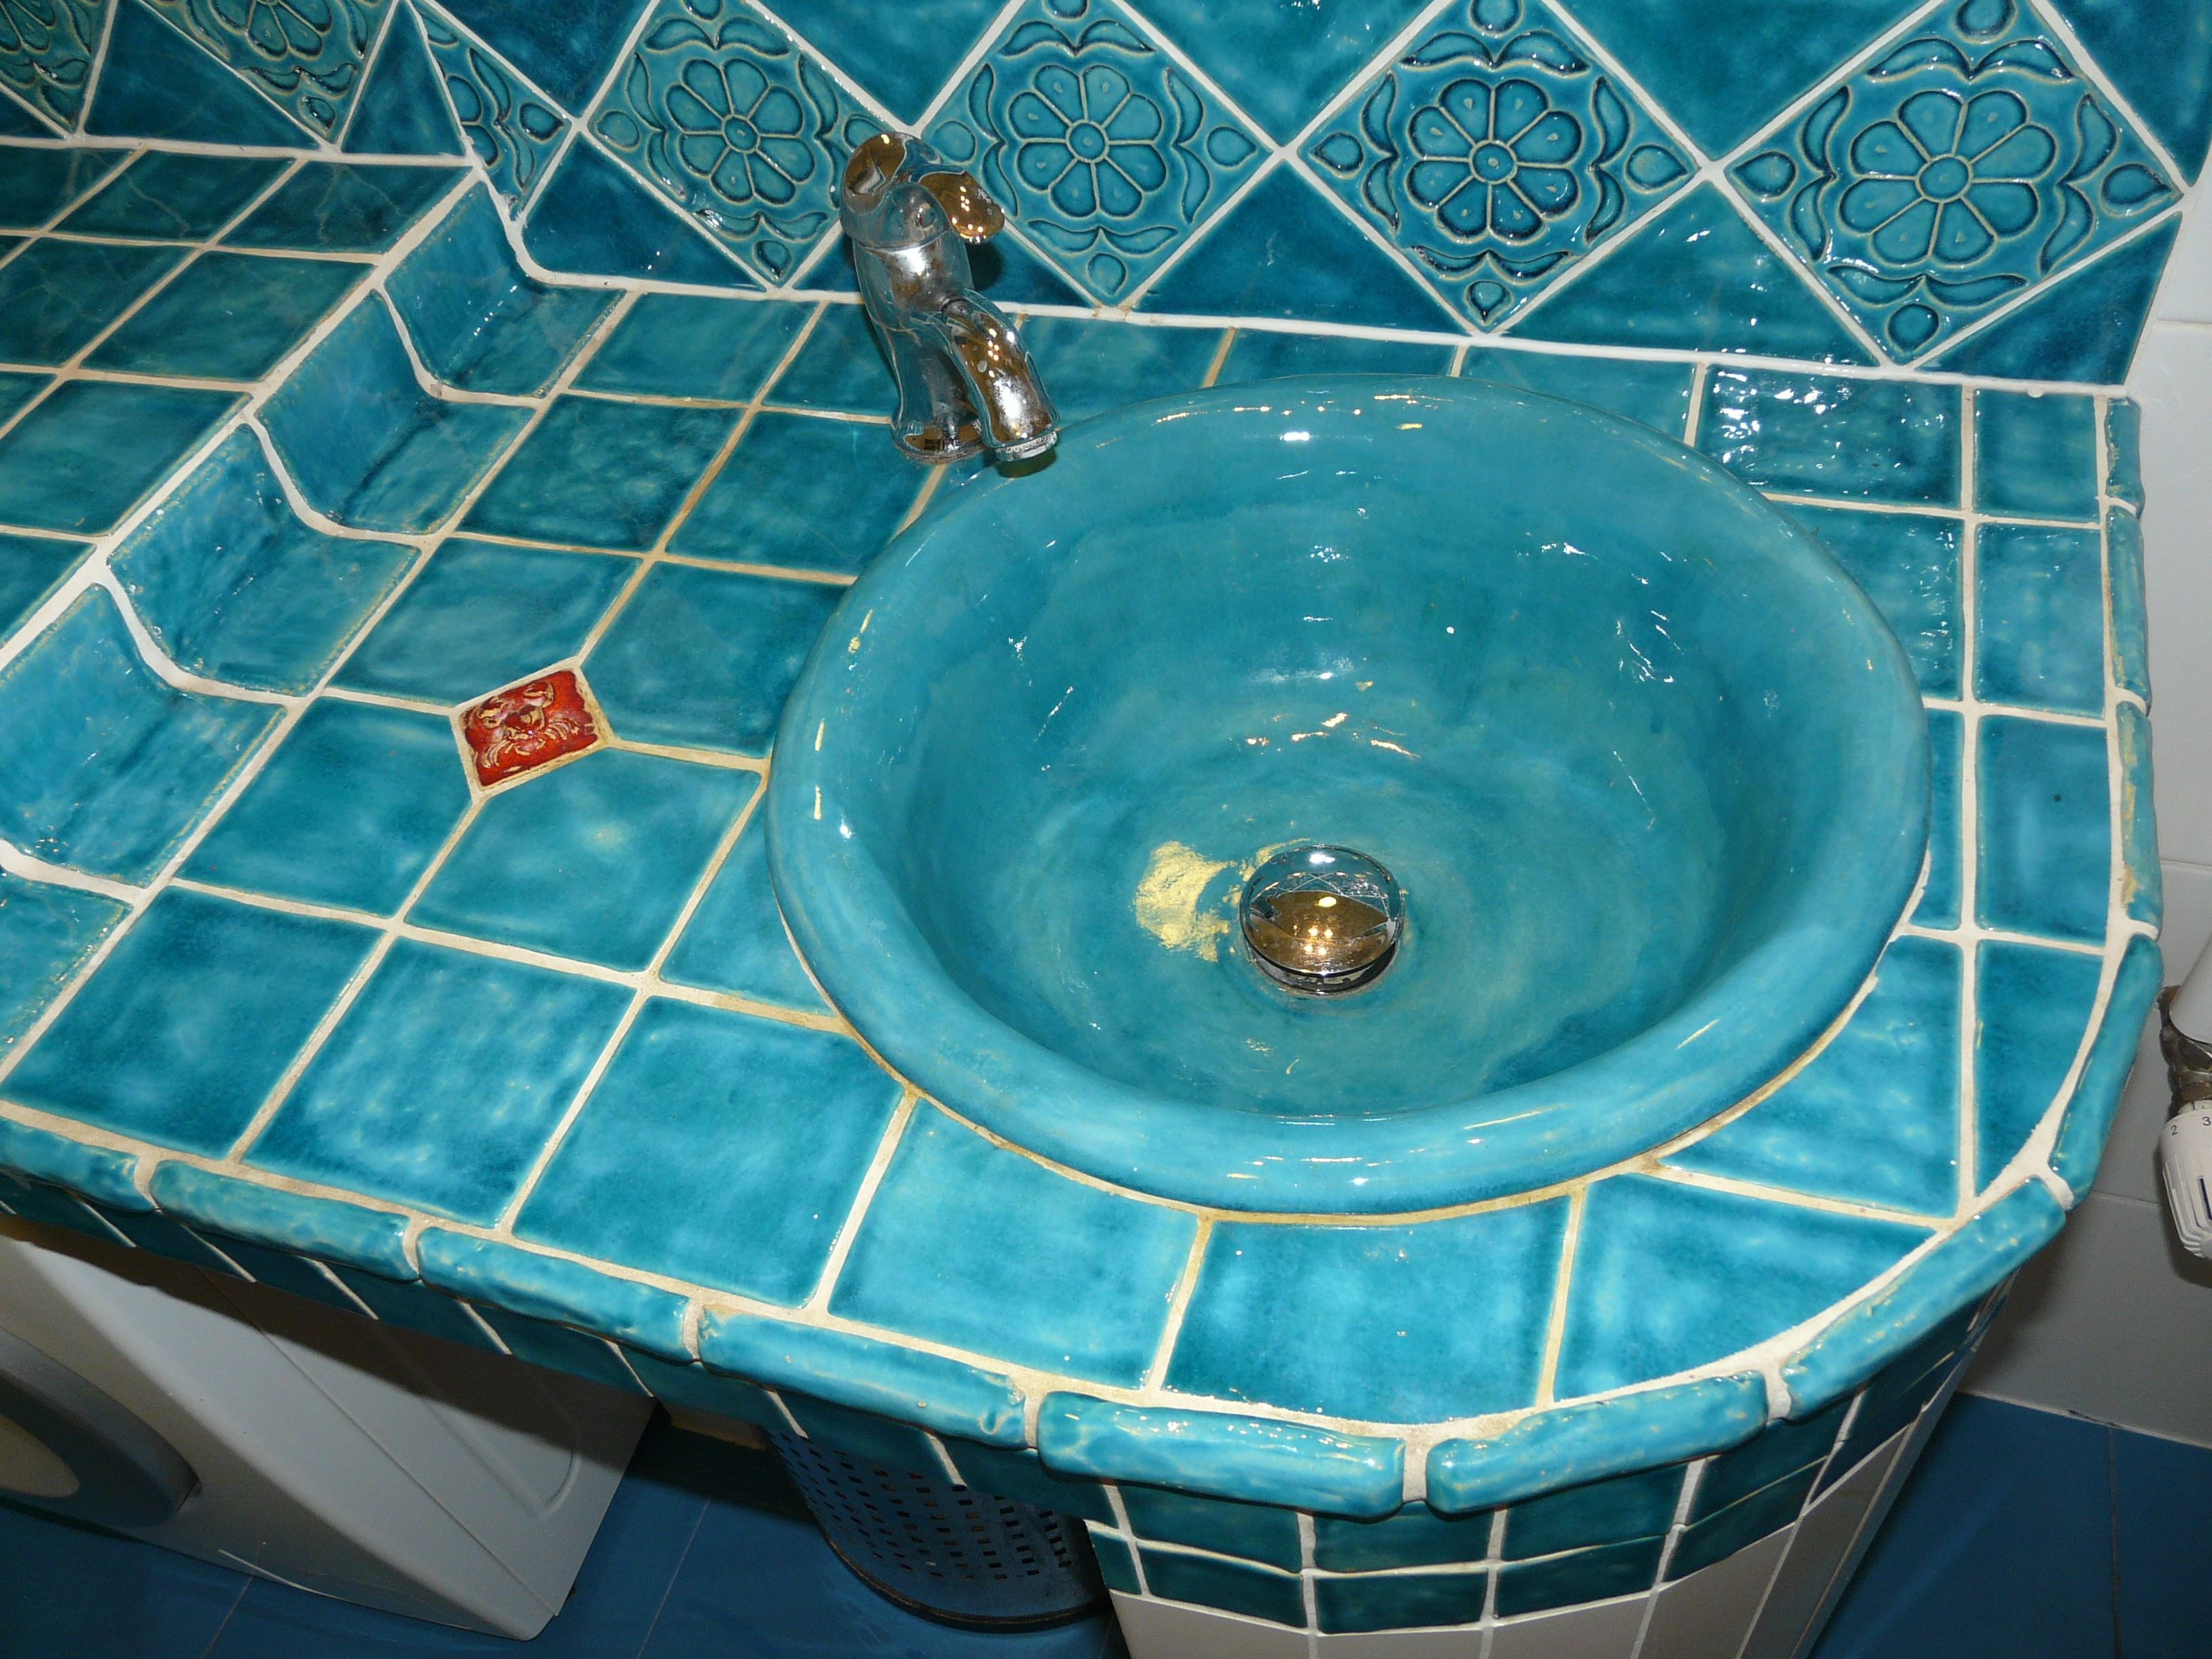 Handmade tiles handmade sink ceramic projects realizacje handmade tiles handmade sink ceramic dailygadgetfo Gallery